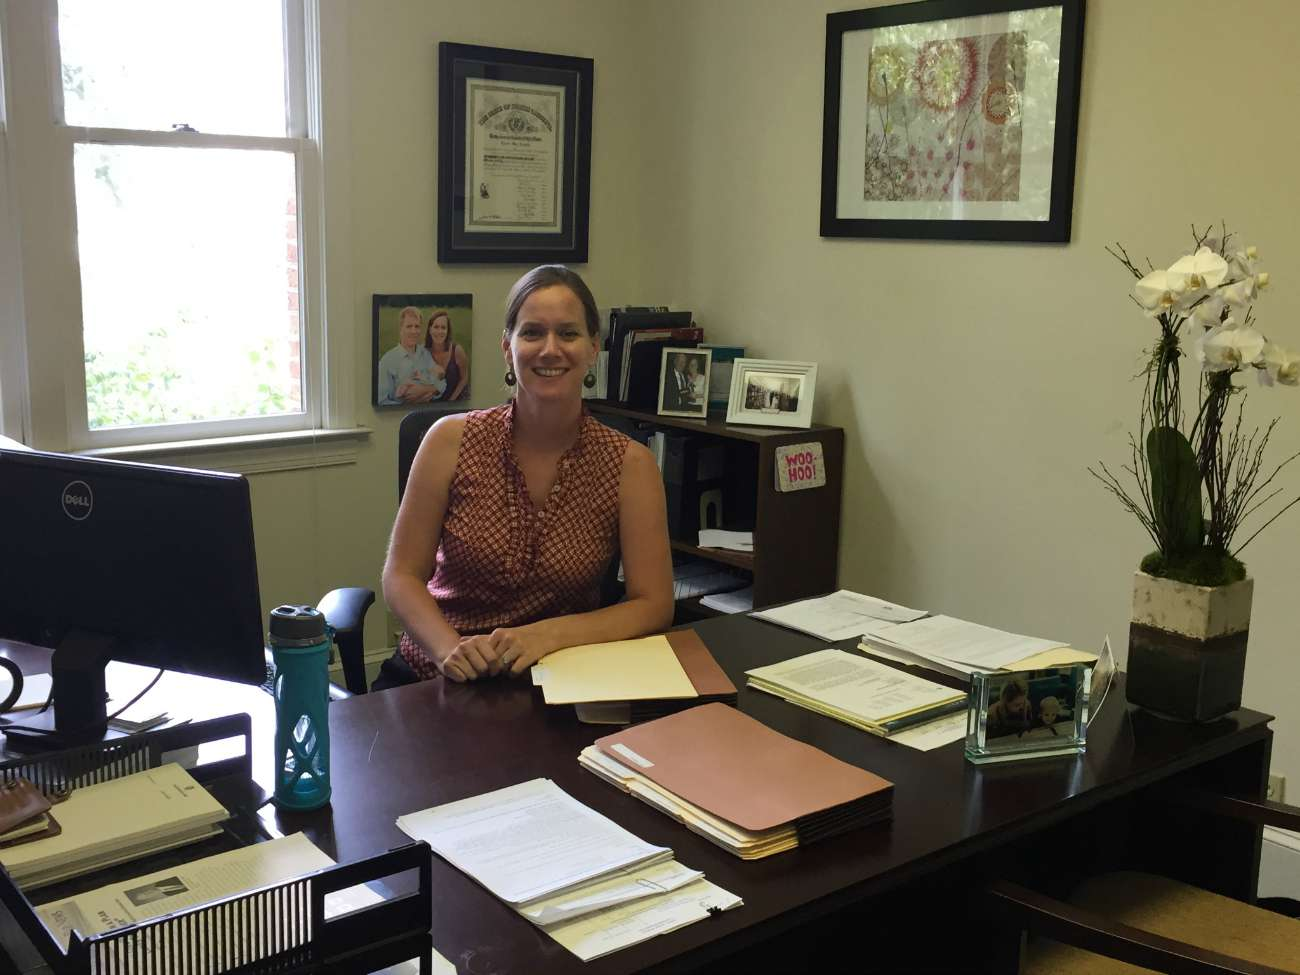 Work Life of Lauren Lewis, Mecklenburg County Bar's Young Lawyer of the Year